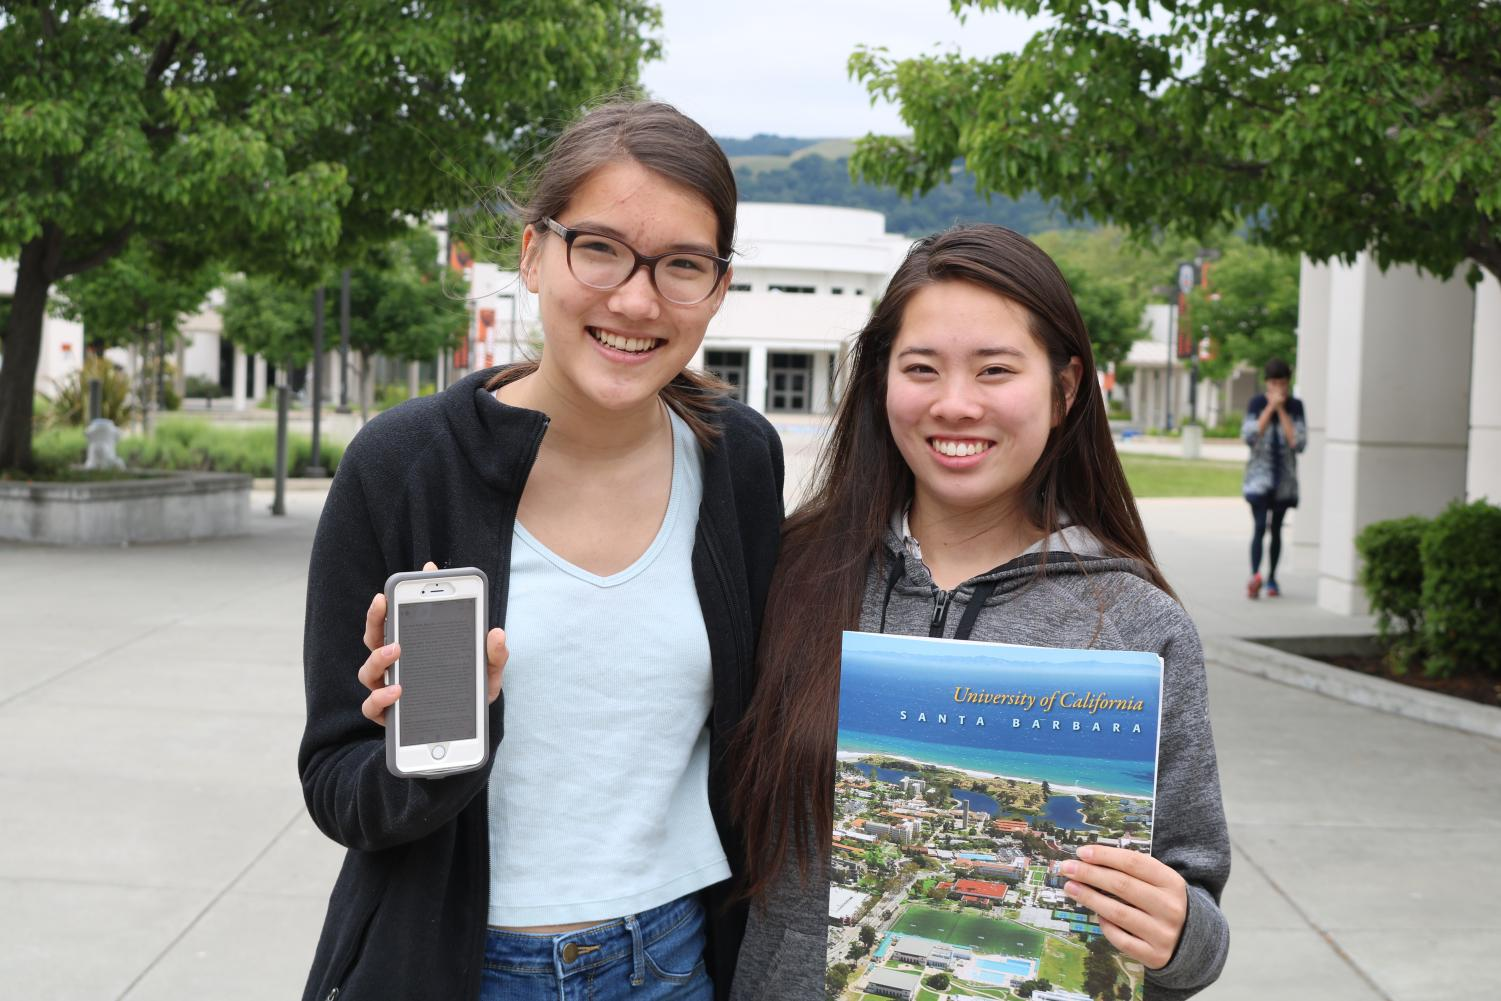 Sophomores Celeste Paapanen, left, and Kimi Shirai are among the Cal High students who landed internships this summer. Paapanen will be interning for Supervisor Wilma Chan at Alameda County District 3, while Shirai is part of UCSB's Research Mentorship Program.